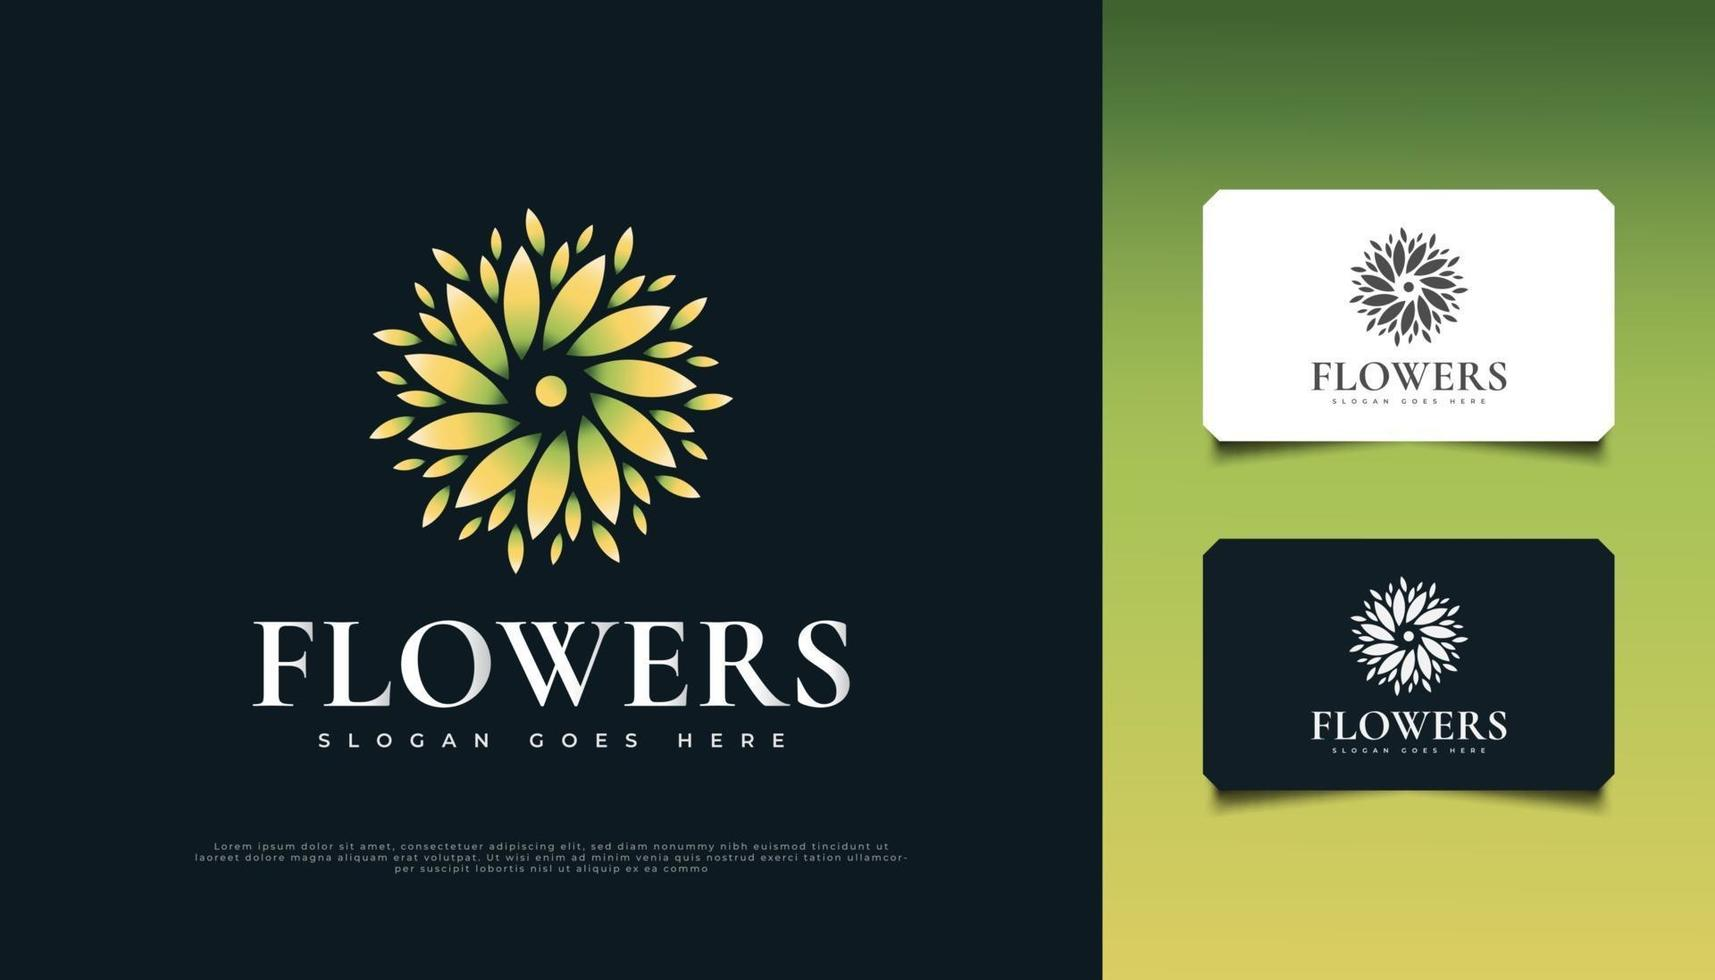 Beautiful Flower Logo Design in Green and Yellow, Suitable for Spa, Beauty, Florists, Resort, or Cosmetic Product Identity vector